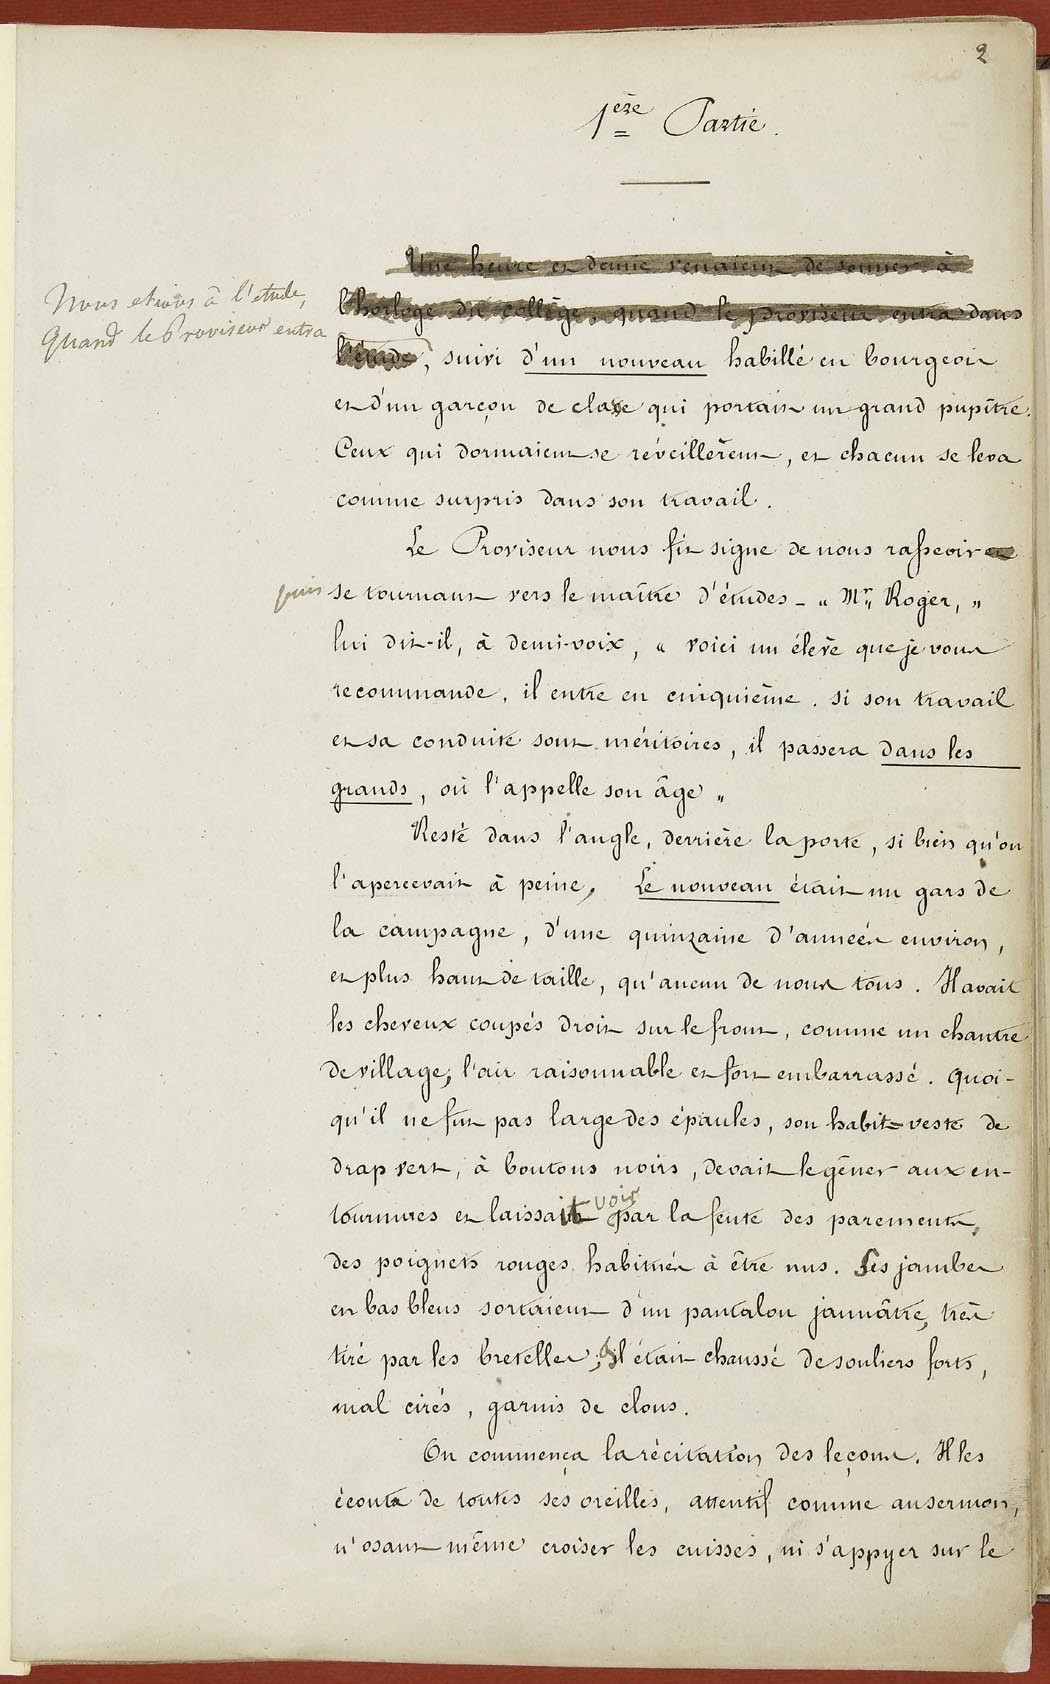 reading madame bovary in the provinces los angeles review of books final typescript of madame bovary flaubert s handwriting in the margin centre flaubert universitatildecopy de rouen